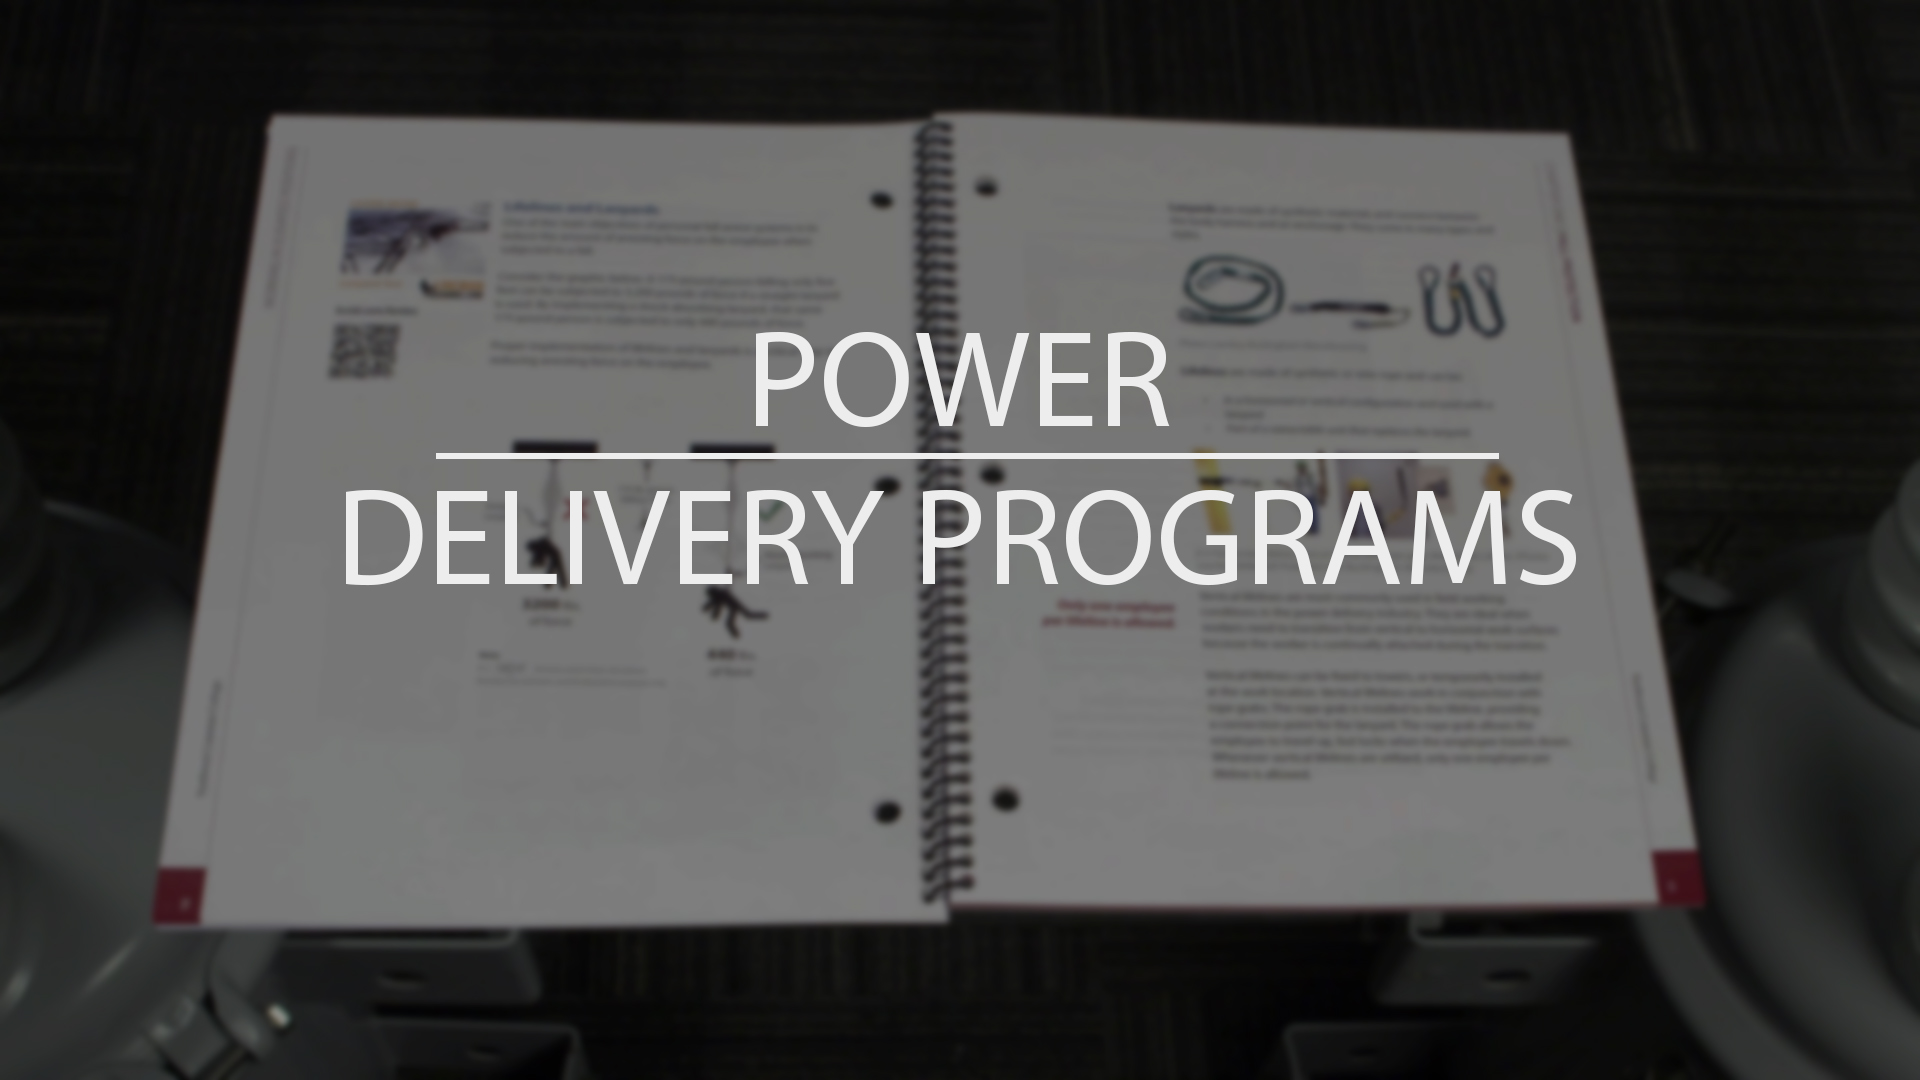 Power Delivery Programs